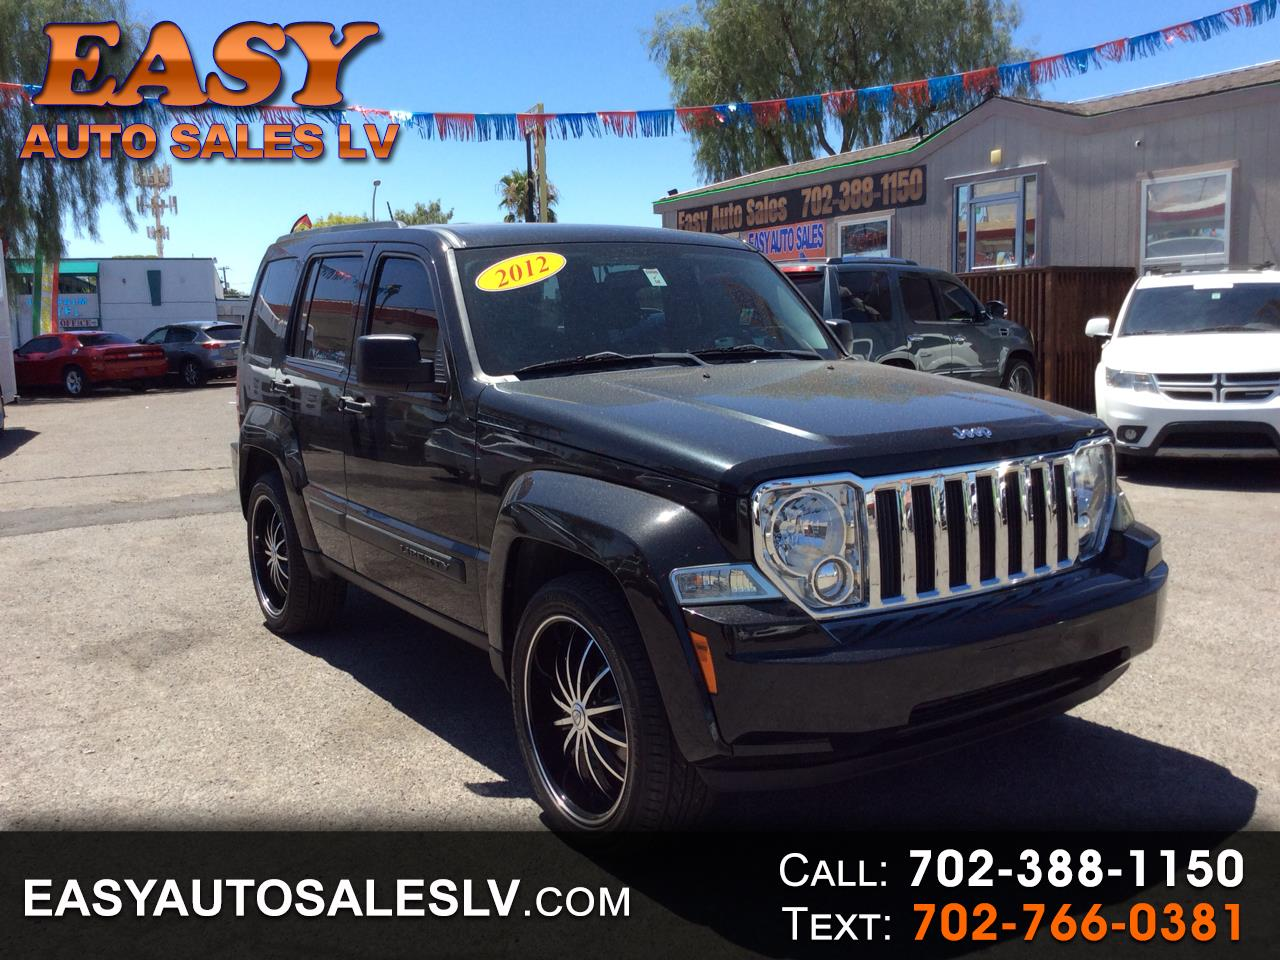 2012 Jeep Liberty RWD 4dr Sport